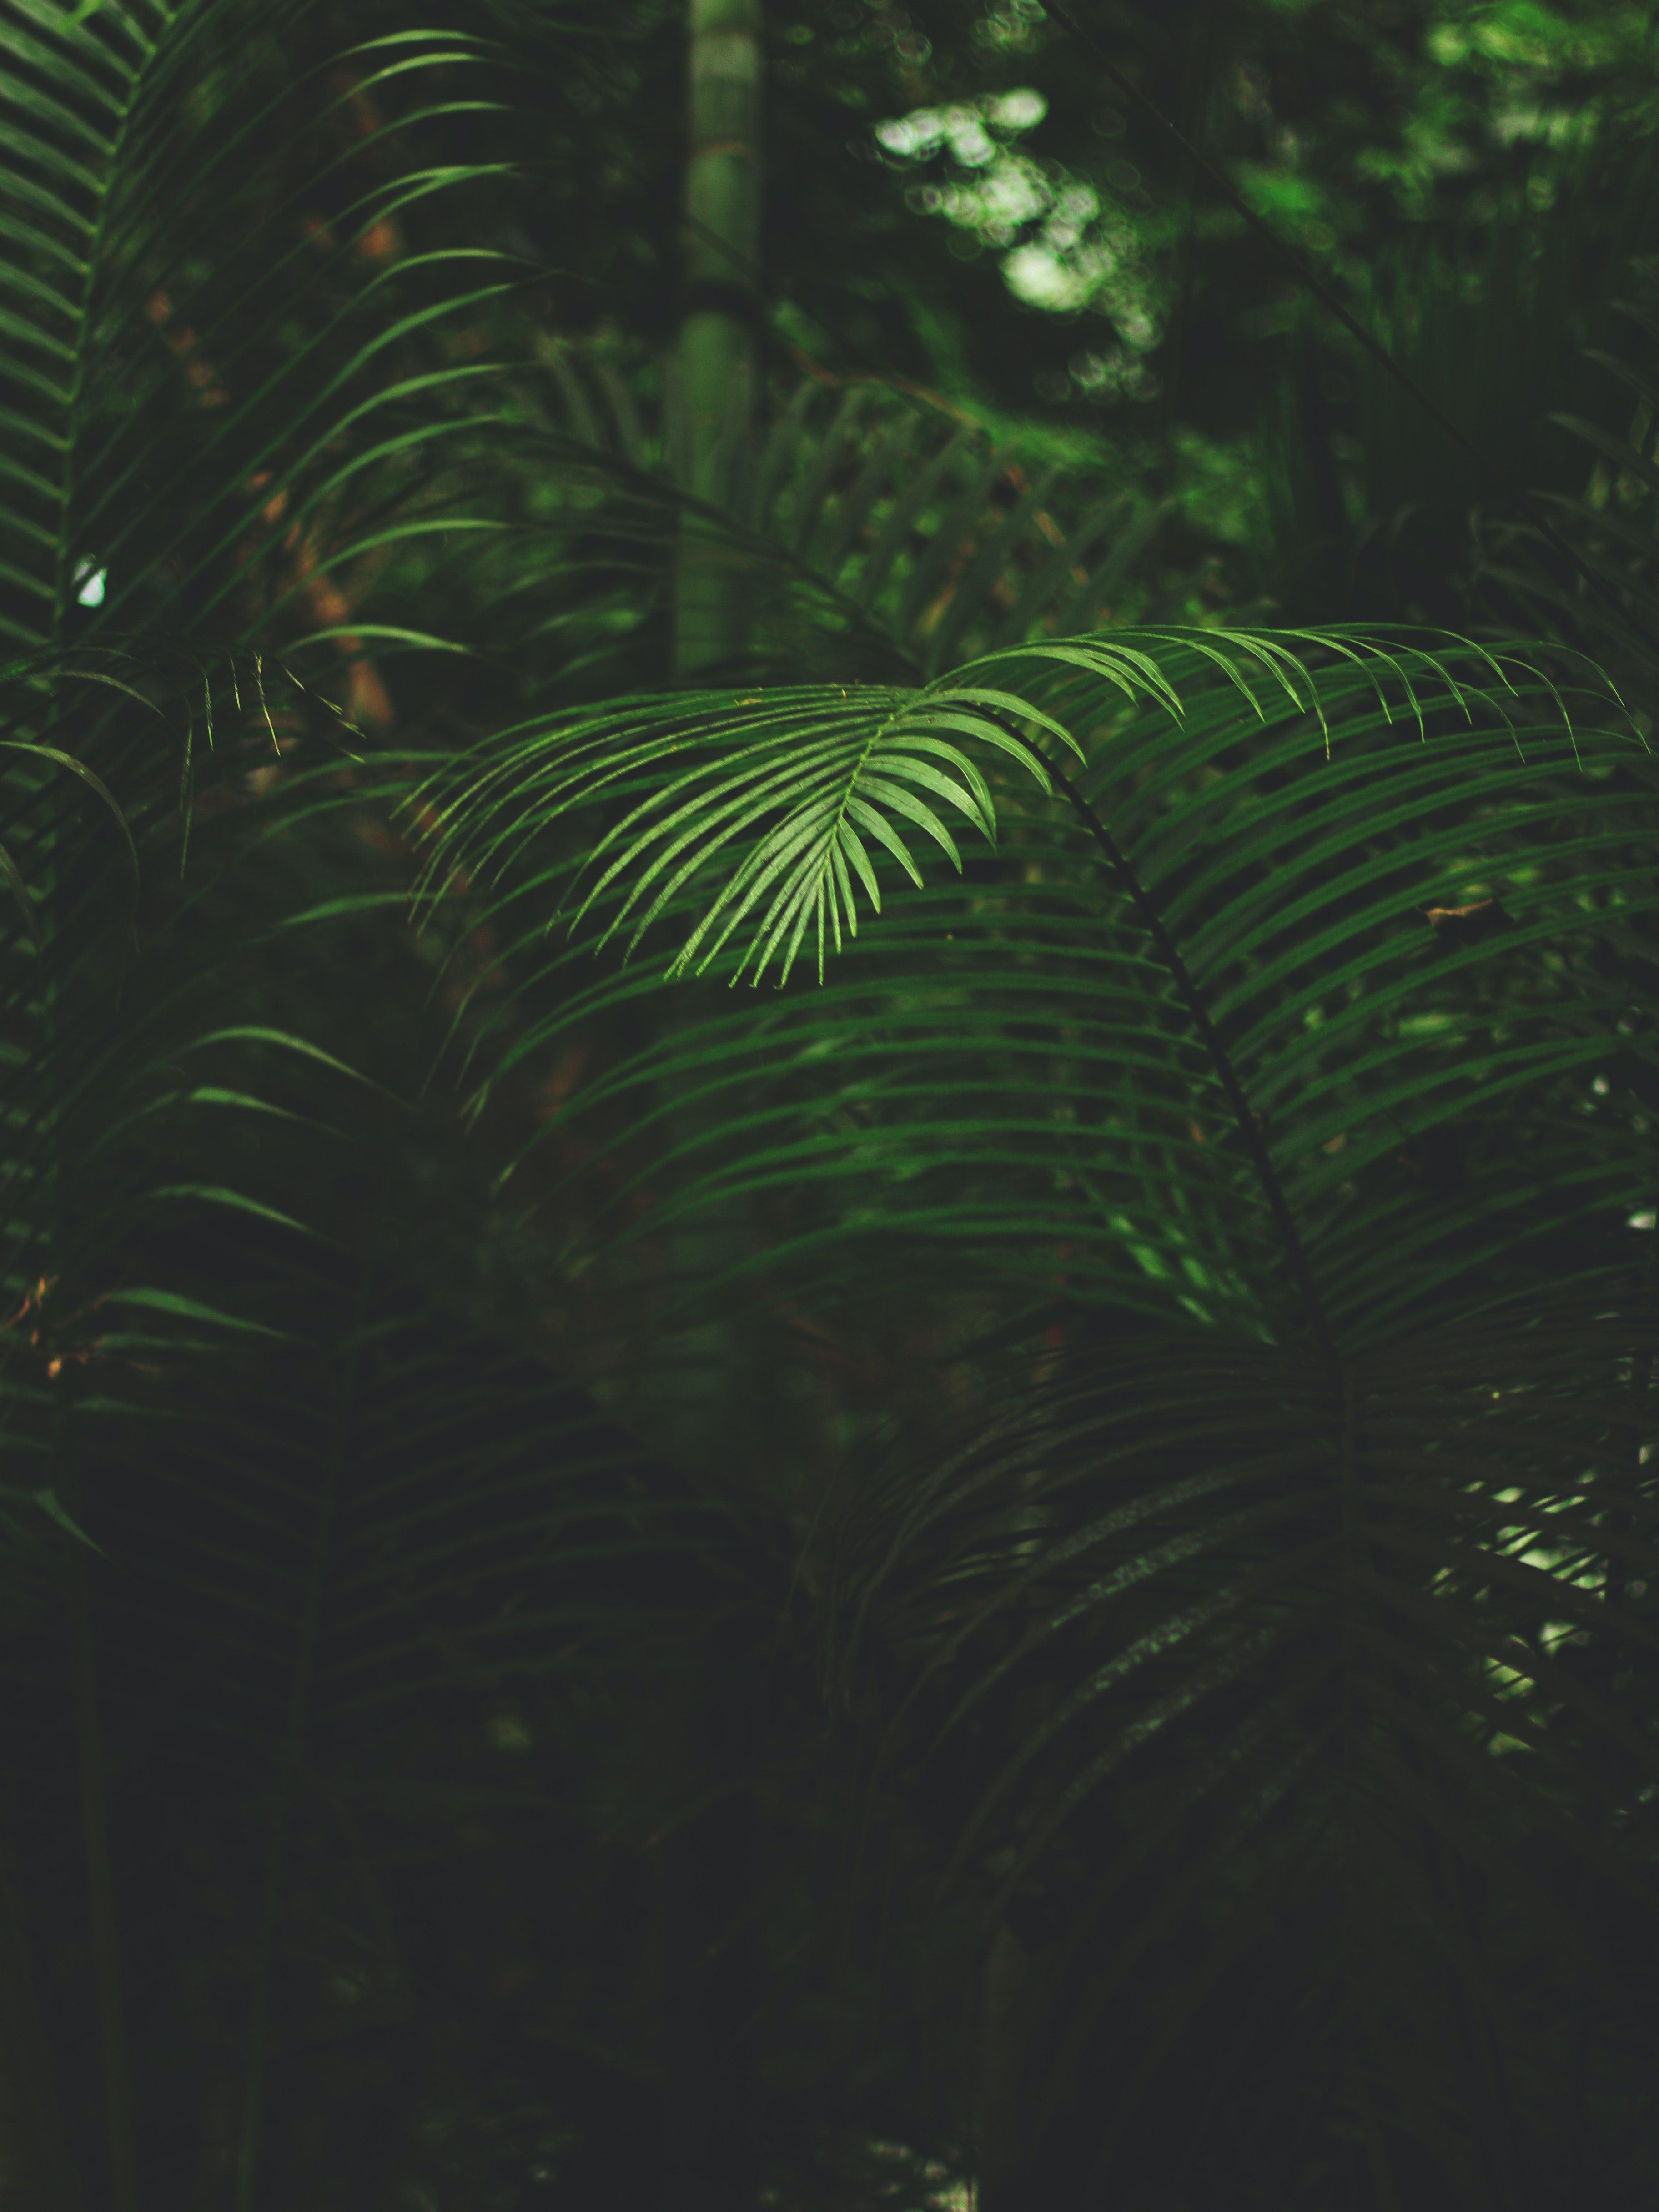 mobile wallpapers · pexels · free stock photos